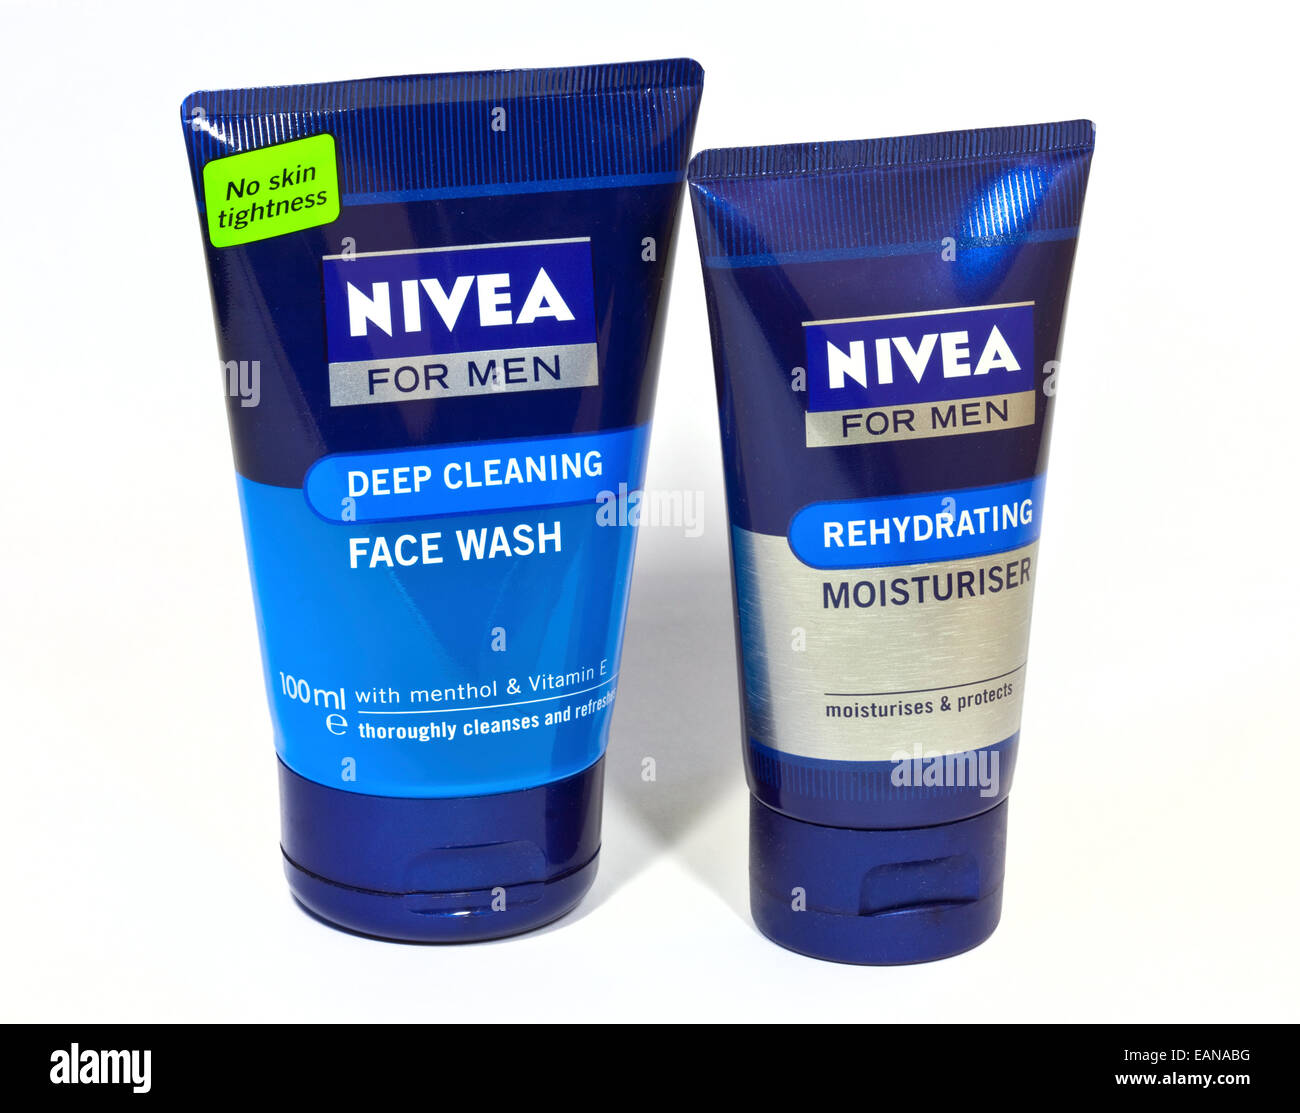 Nivea for Men Deep Cleaning Face Wash and Rehydrating Moisturiser - Stock Image